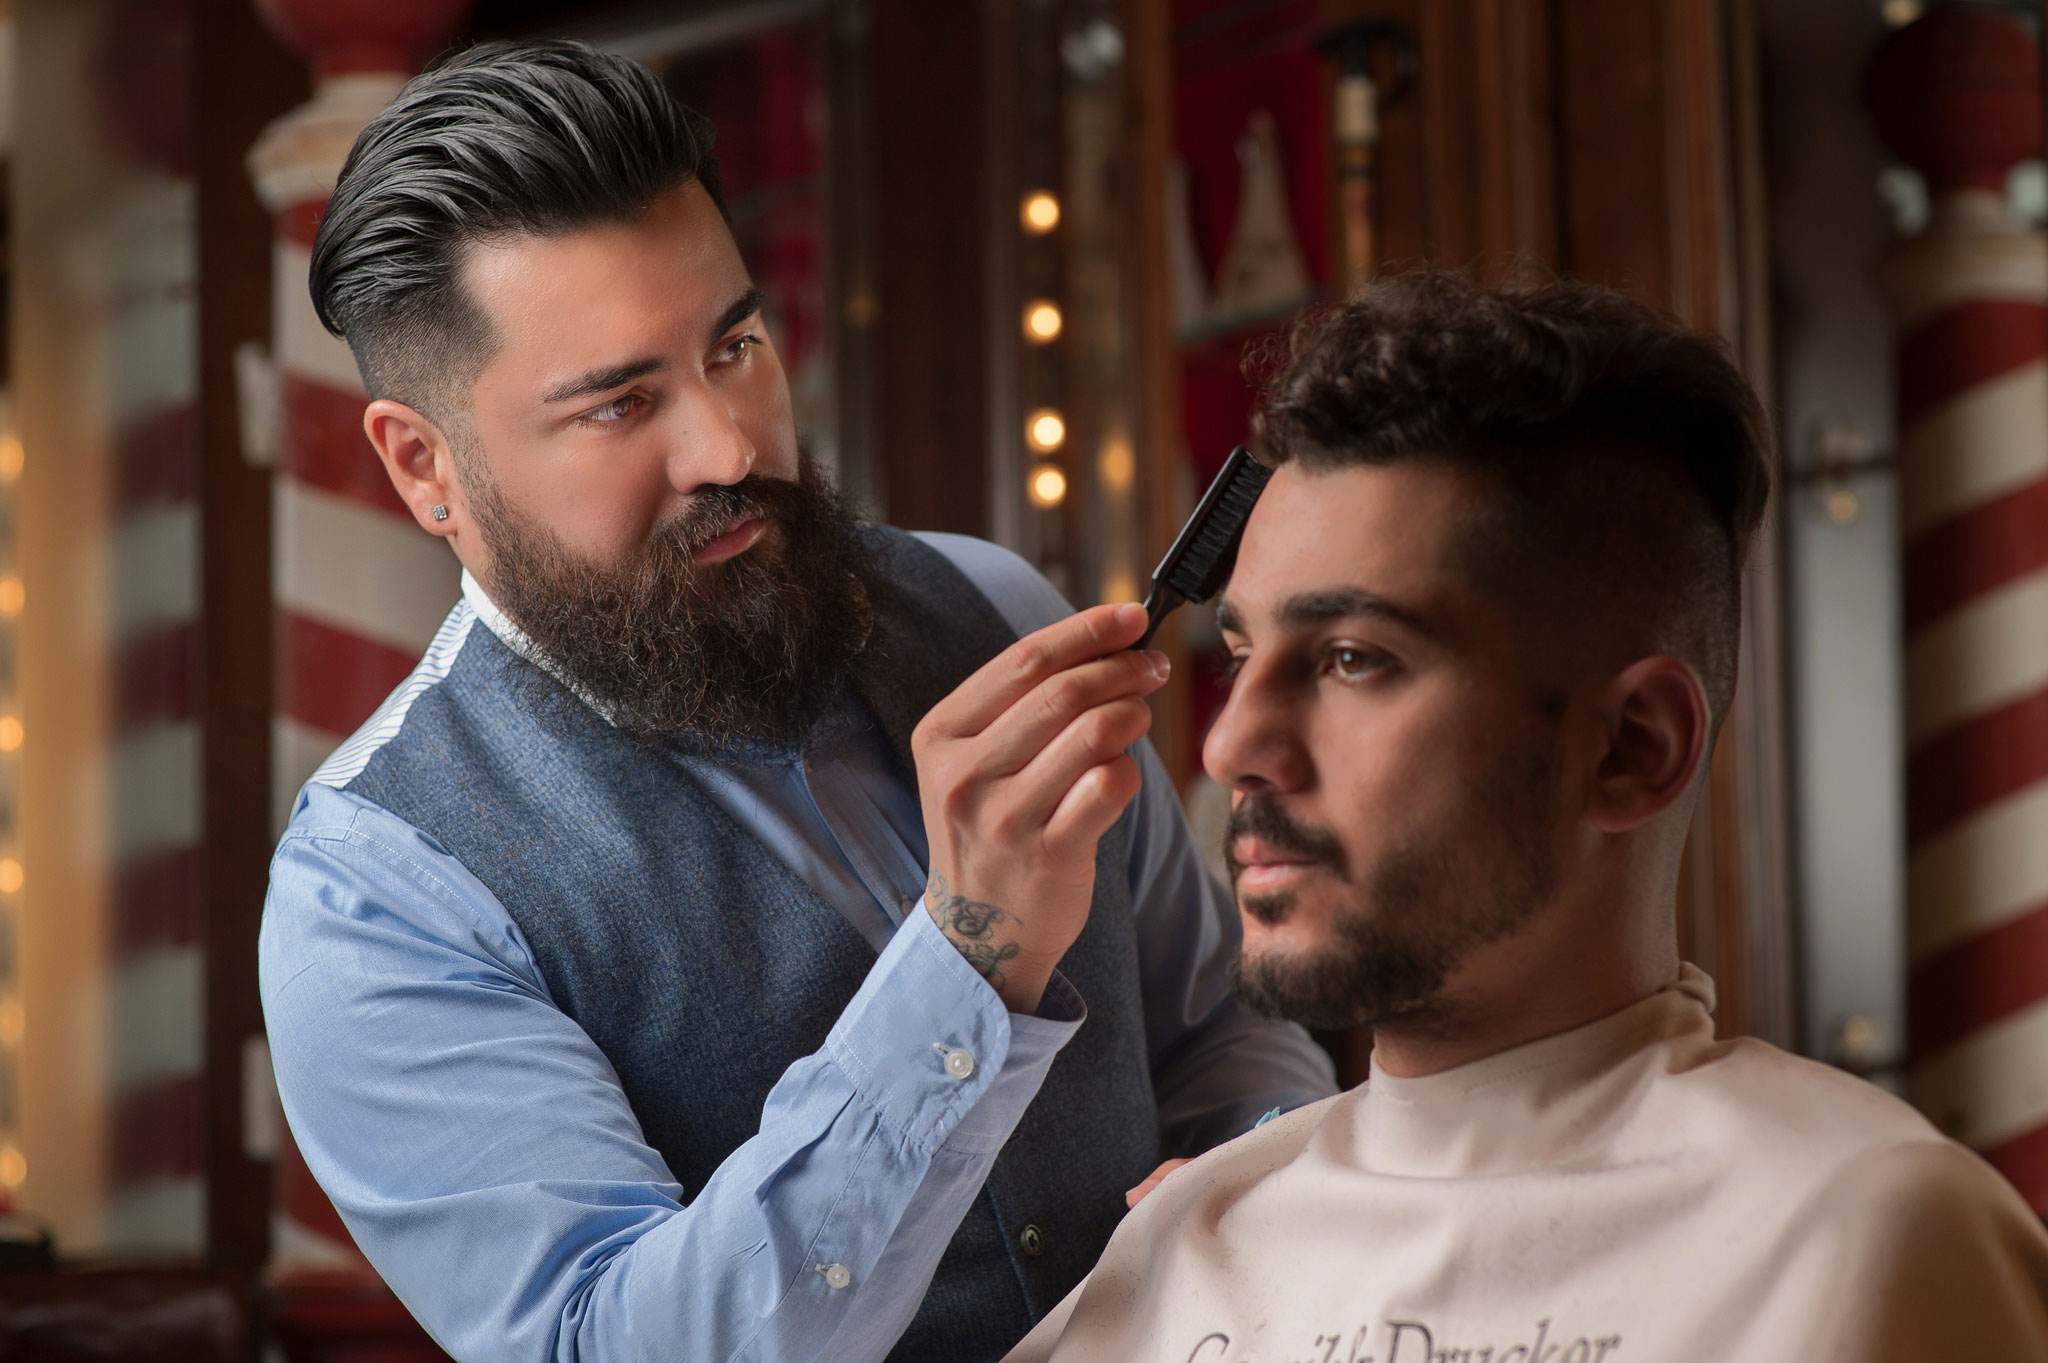 The Gornik & Drucker barbershop at the Montage Beverly Hills